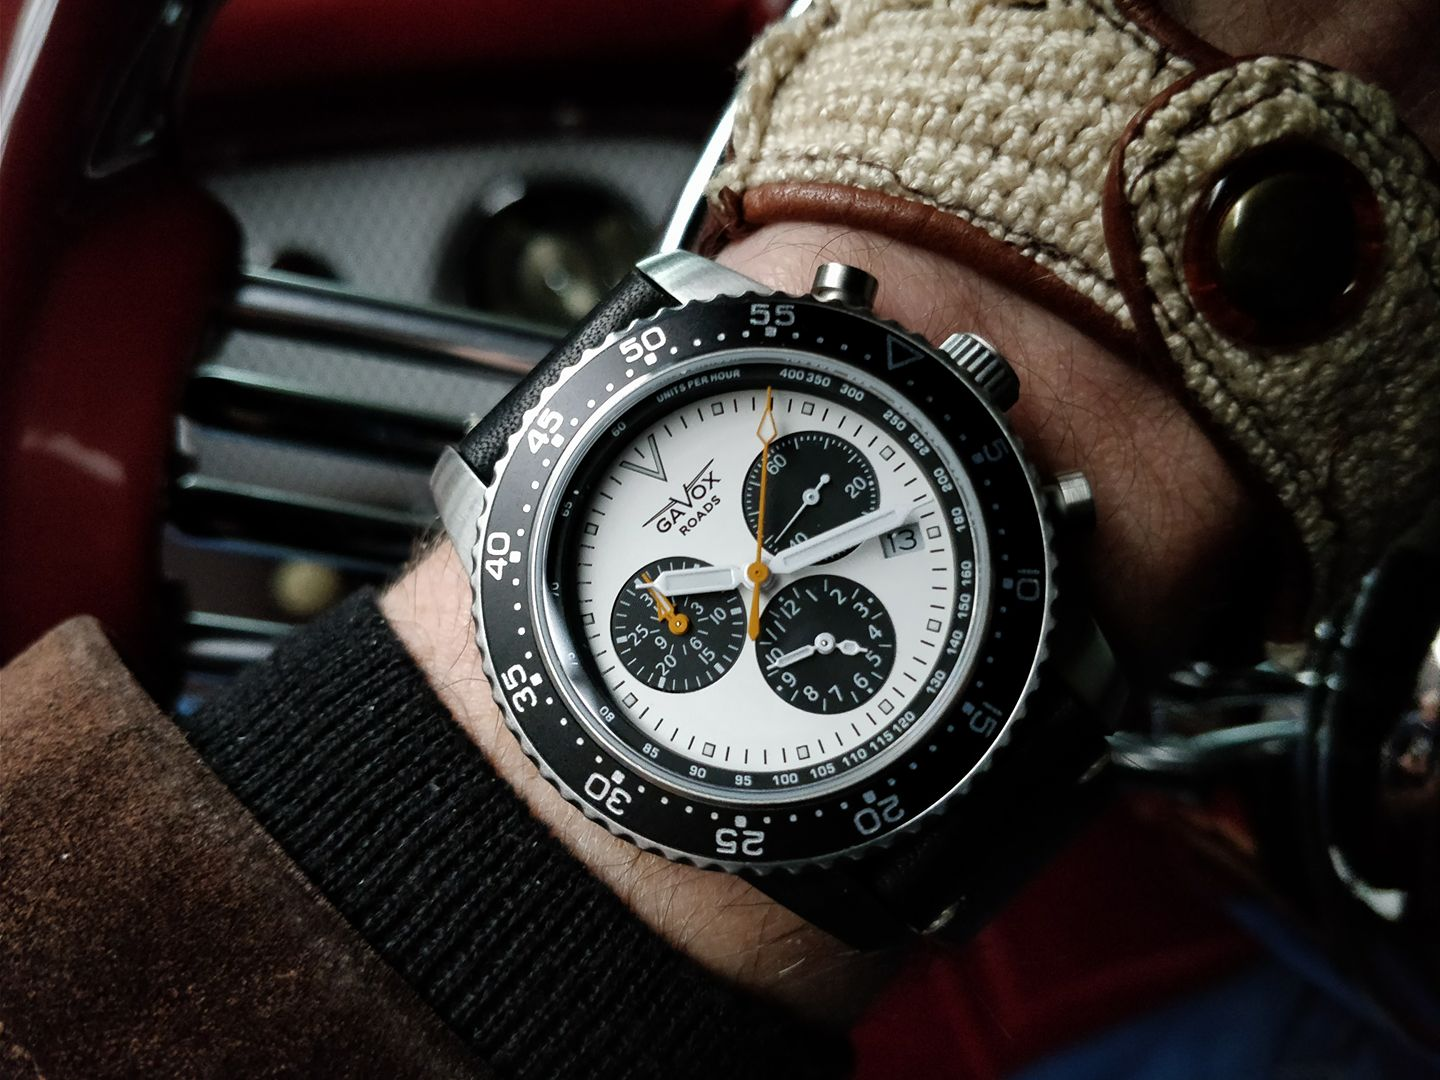 Montre Gavox Roads Icefileds Parkway au volant